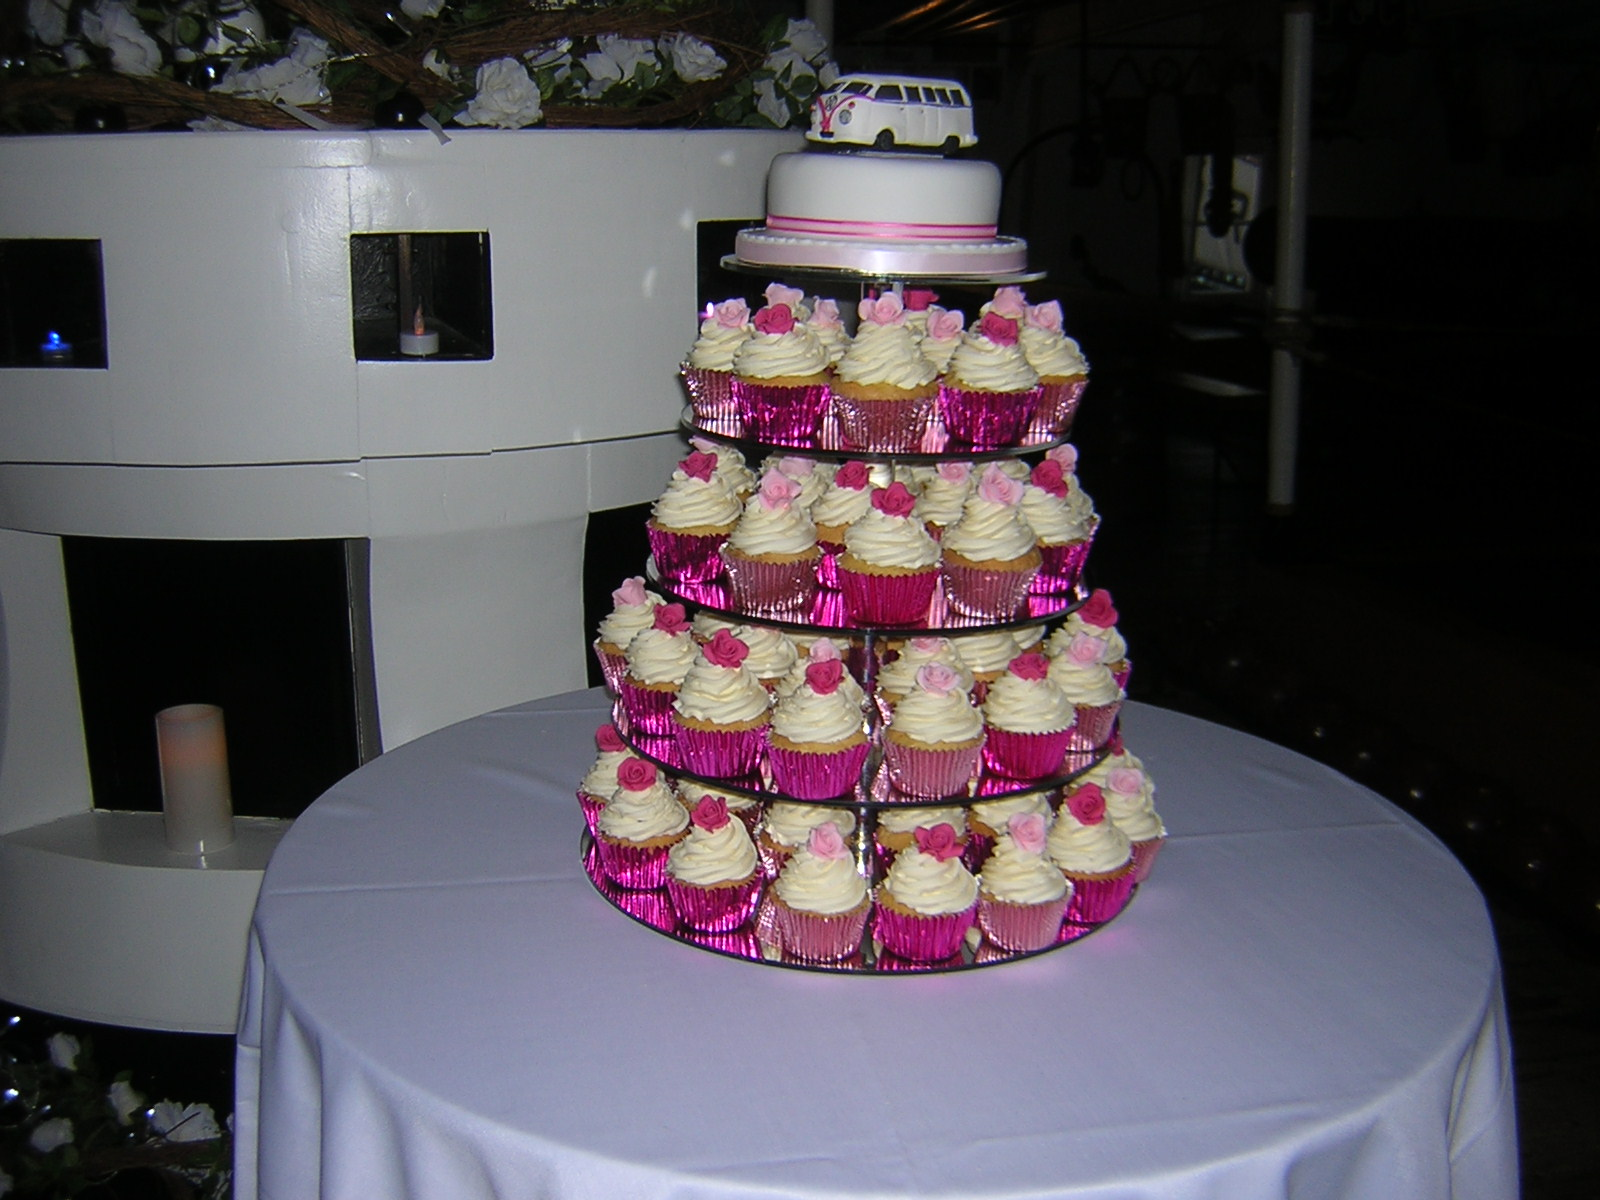 Index of /wp-content/gallery/cupcake-cakes